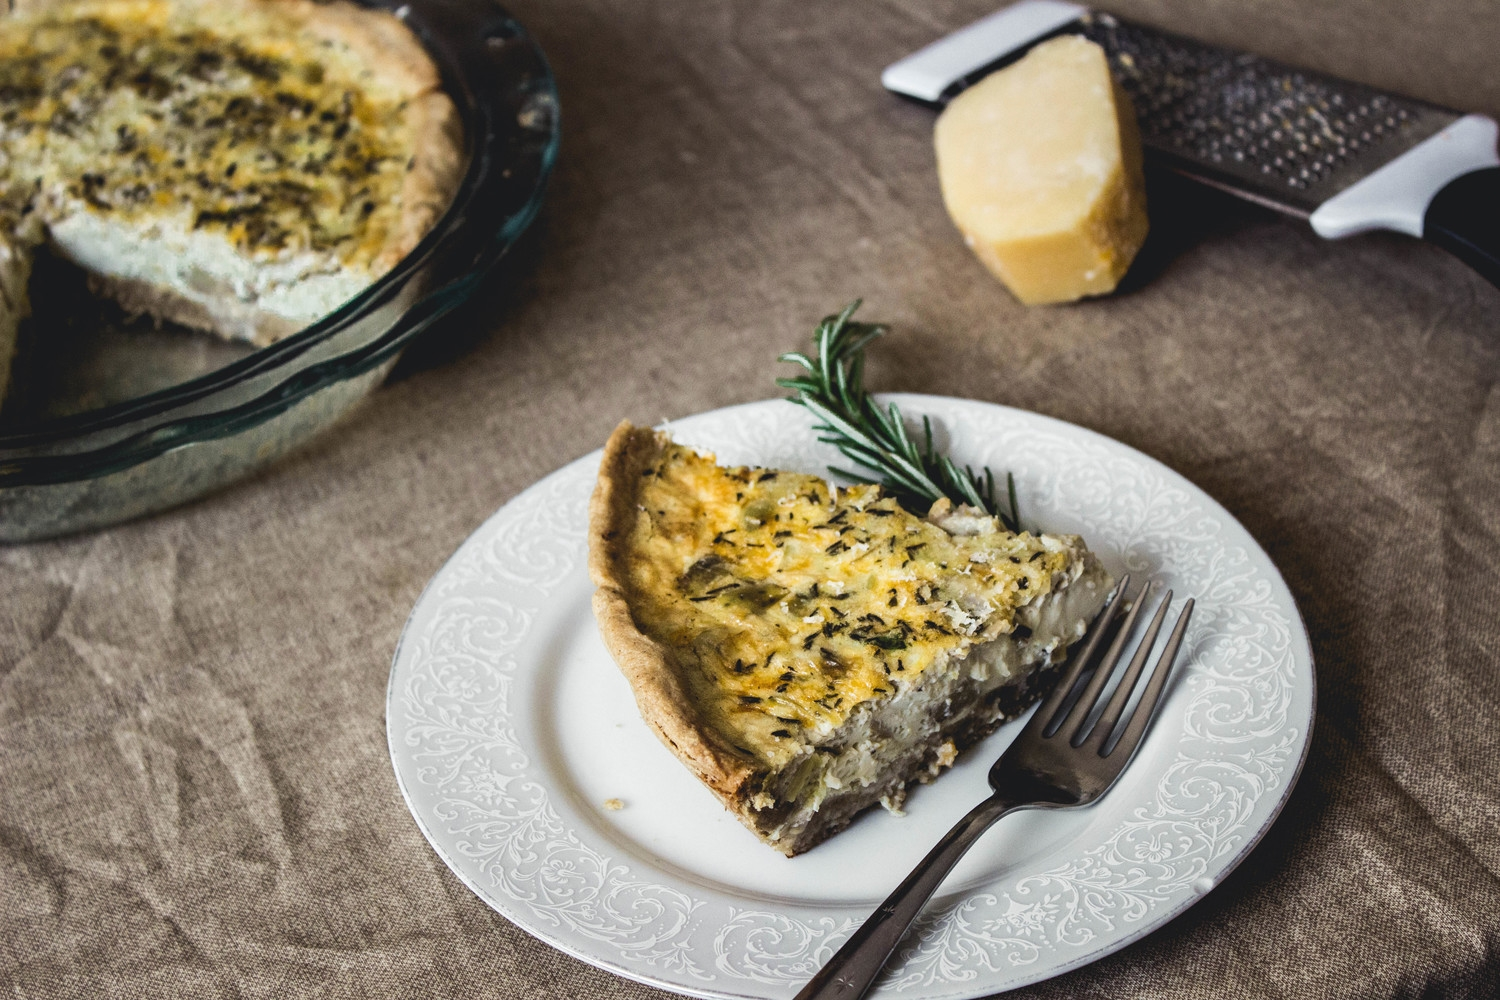 Hatch Chile Quiche with an Oat Crust by Fit for the Soul